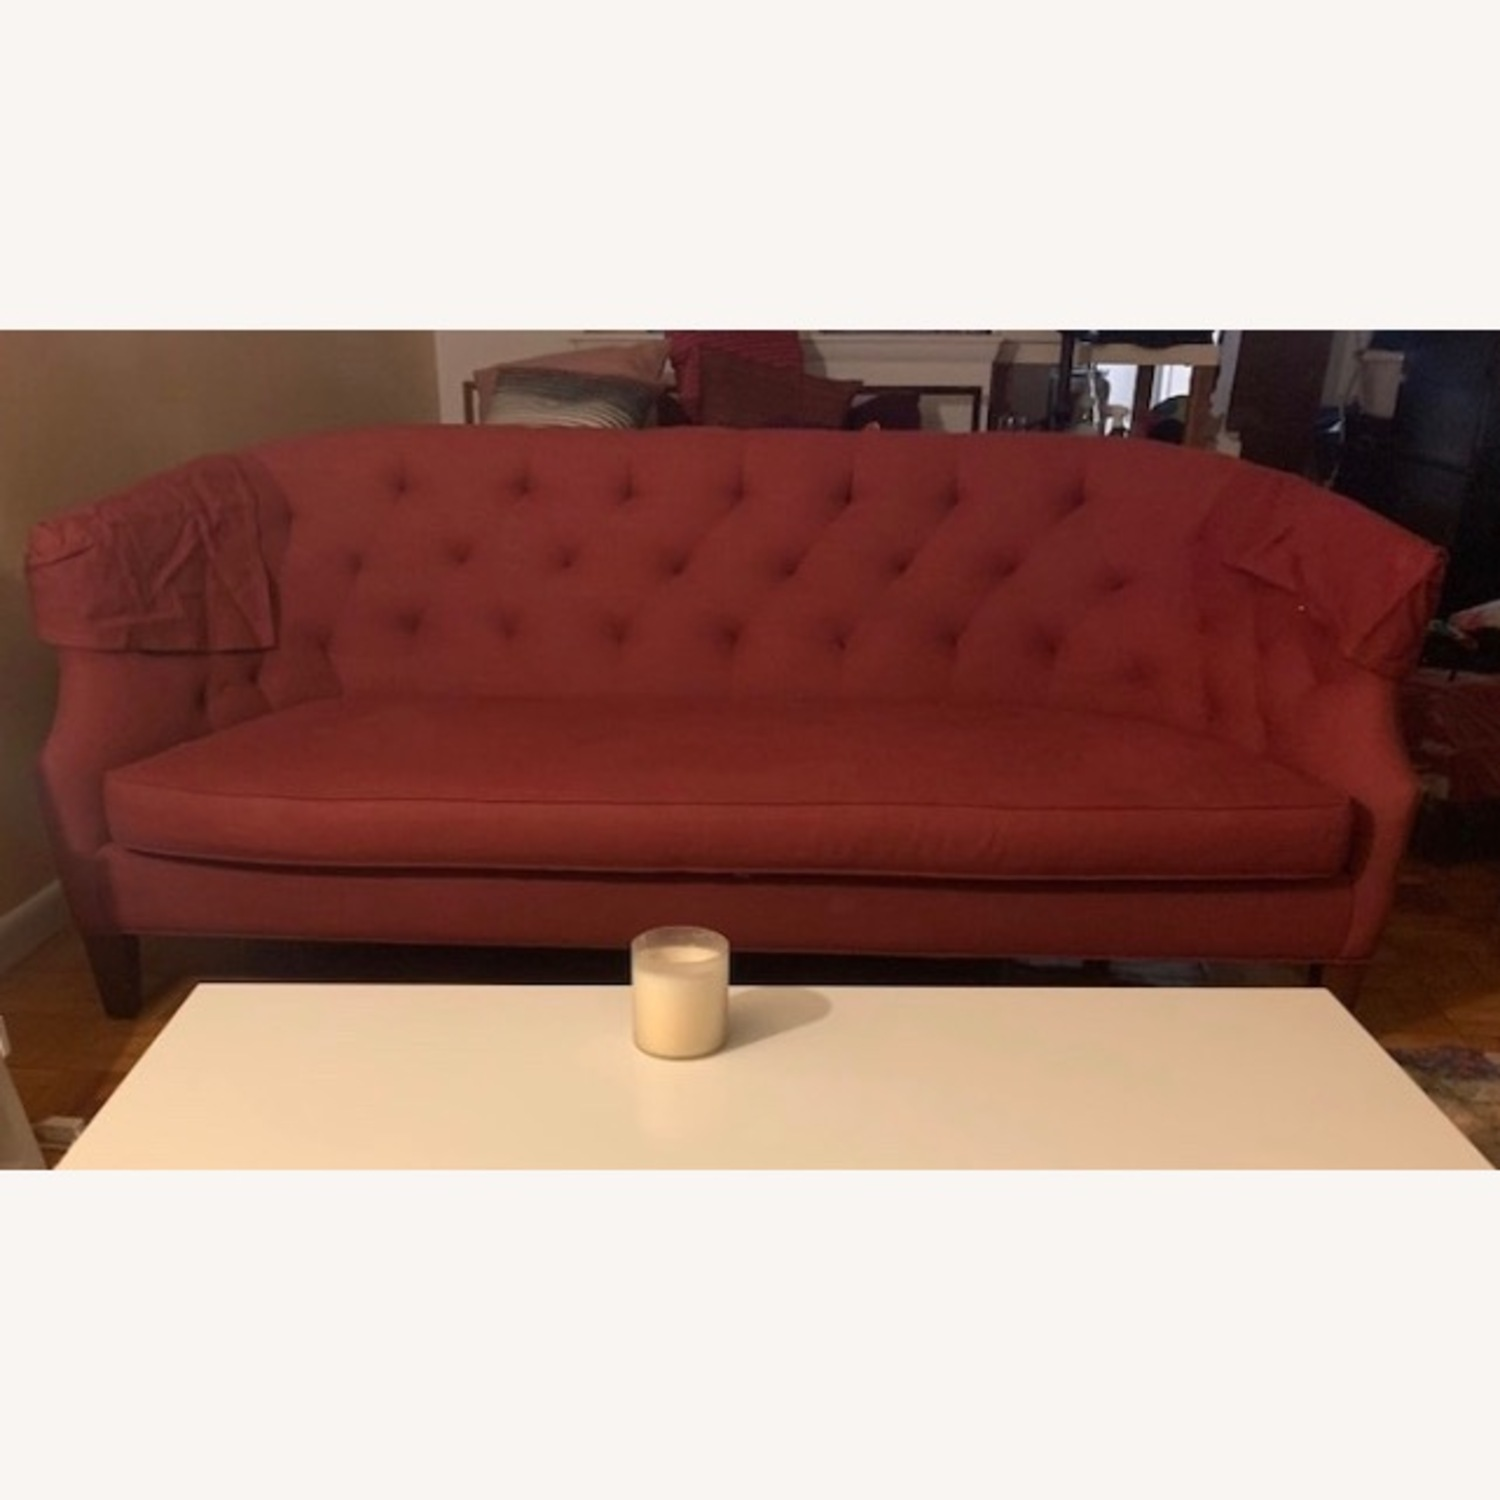 Crate & Barrel Azure Brick Red Sofa